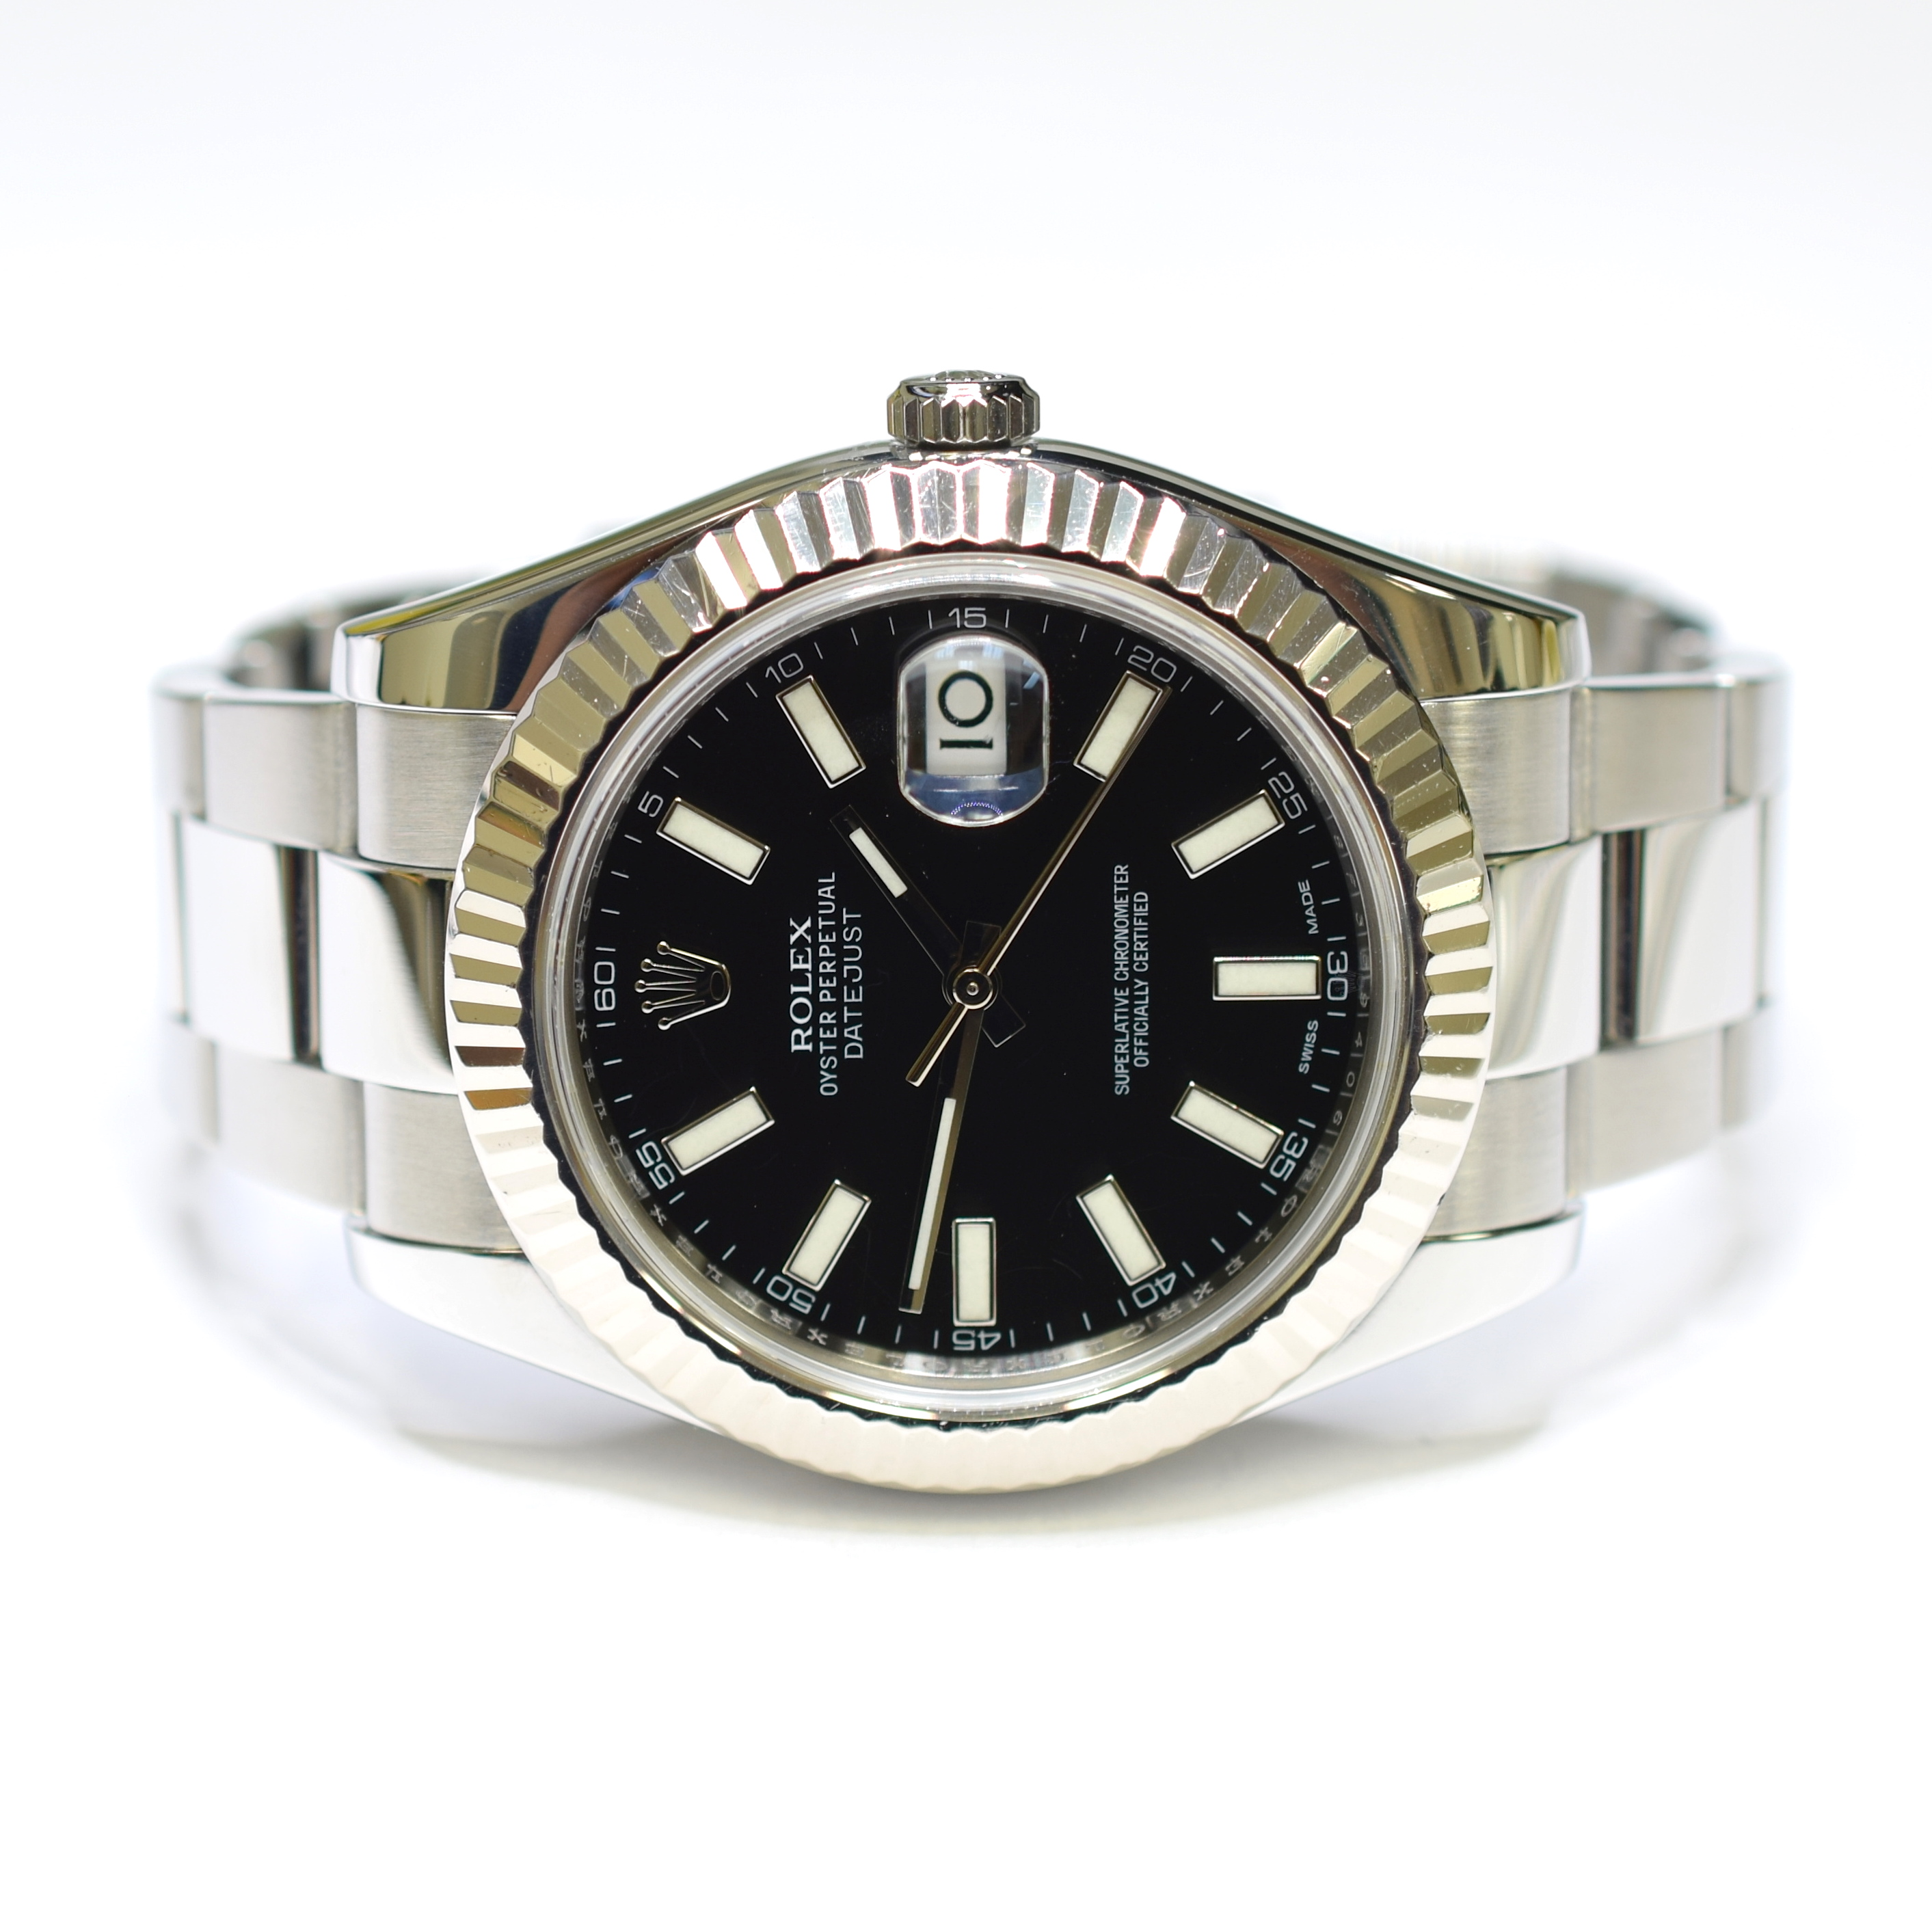 70befd89496 Image 1 of 3. Rolex DateJust II Oyster Perpetual 41mm Stainless Steel Mens  Watch 116334